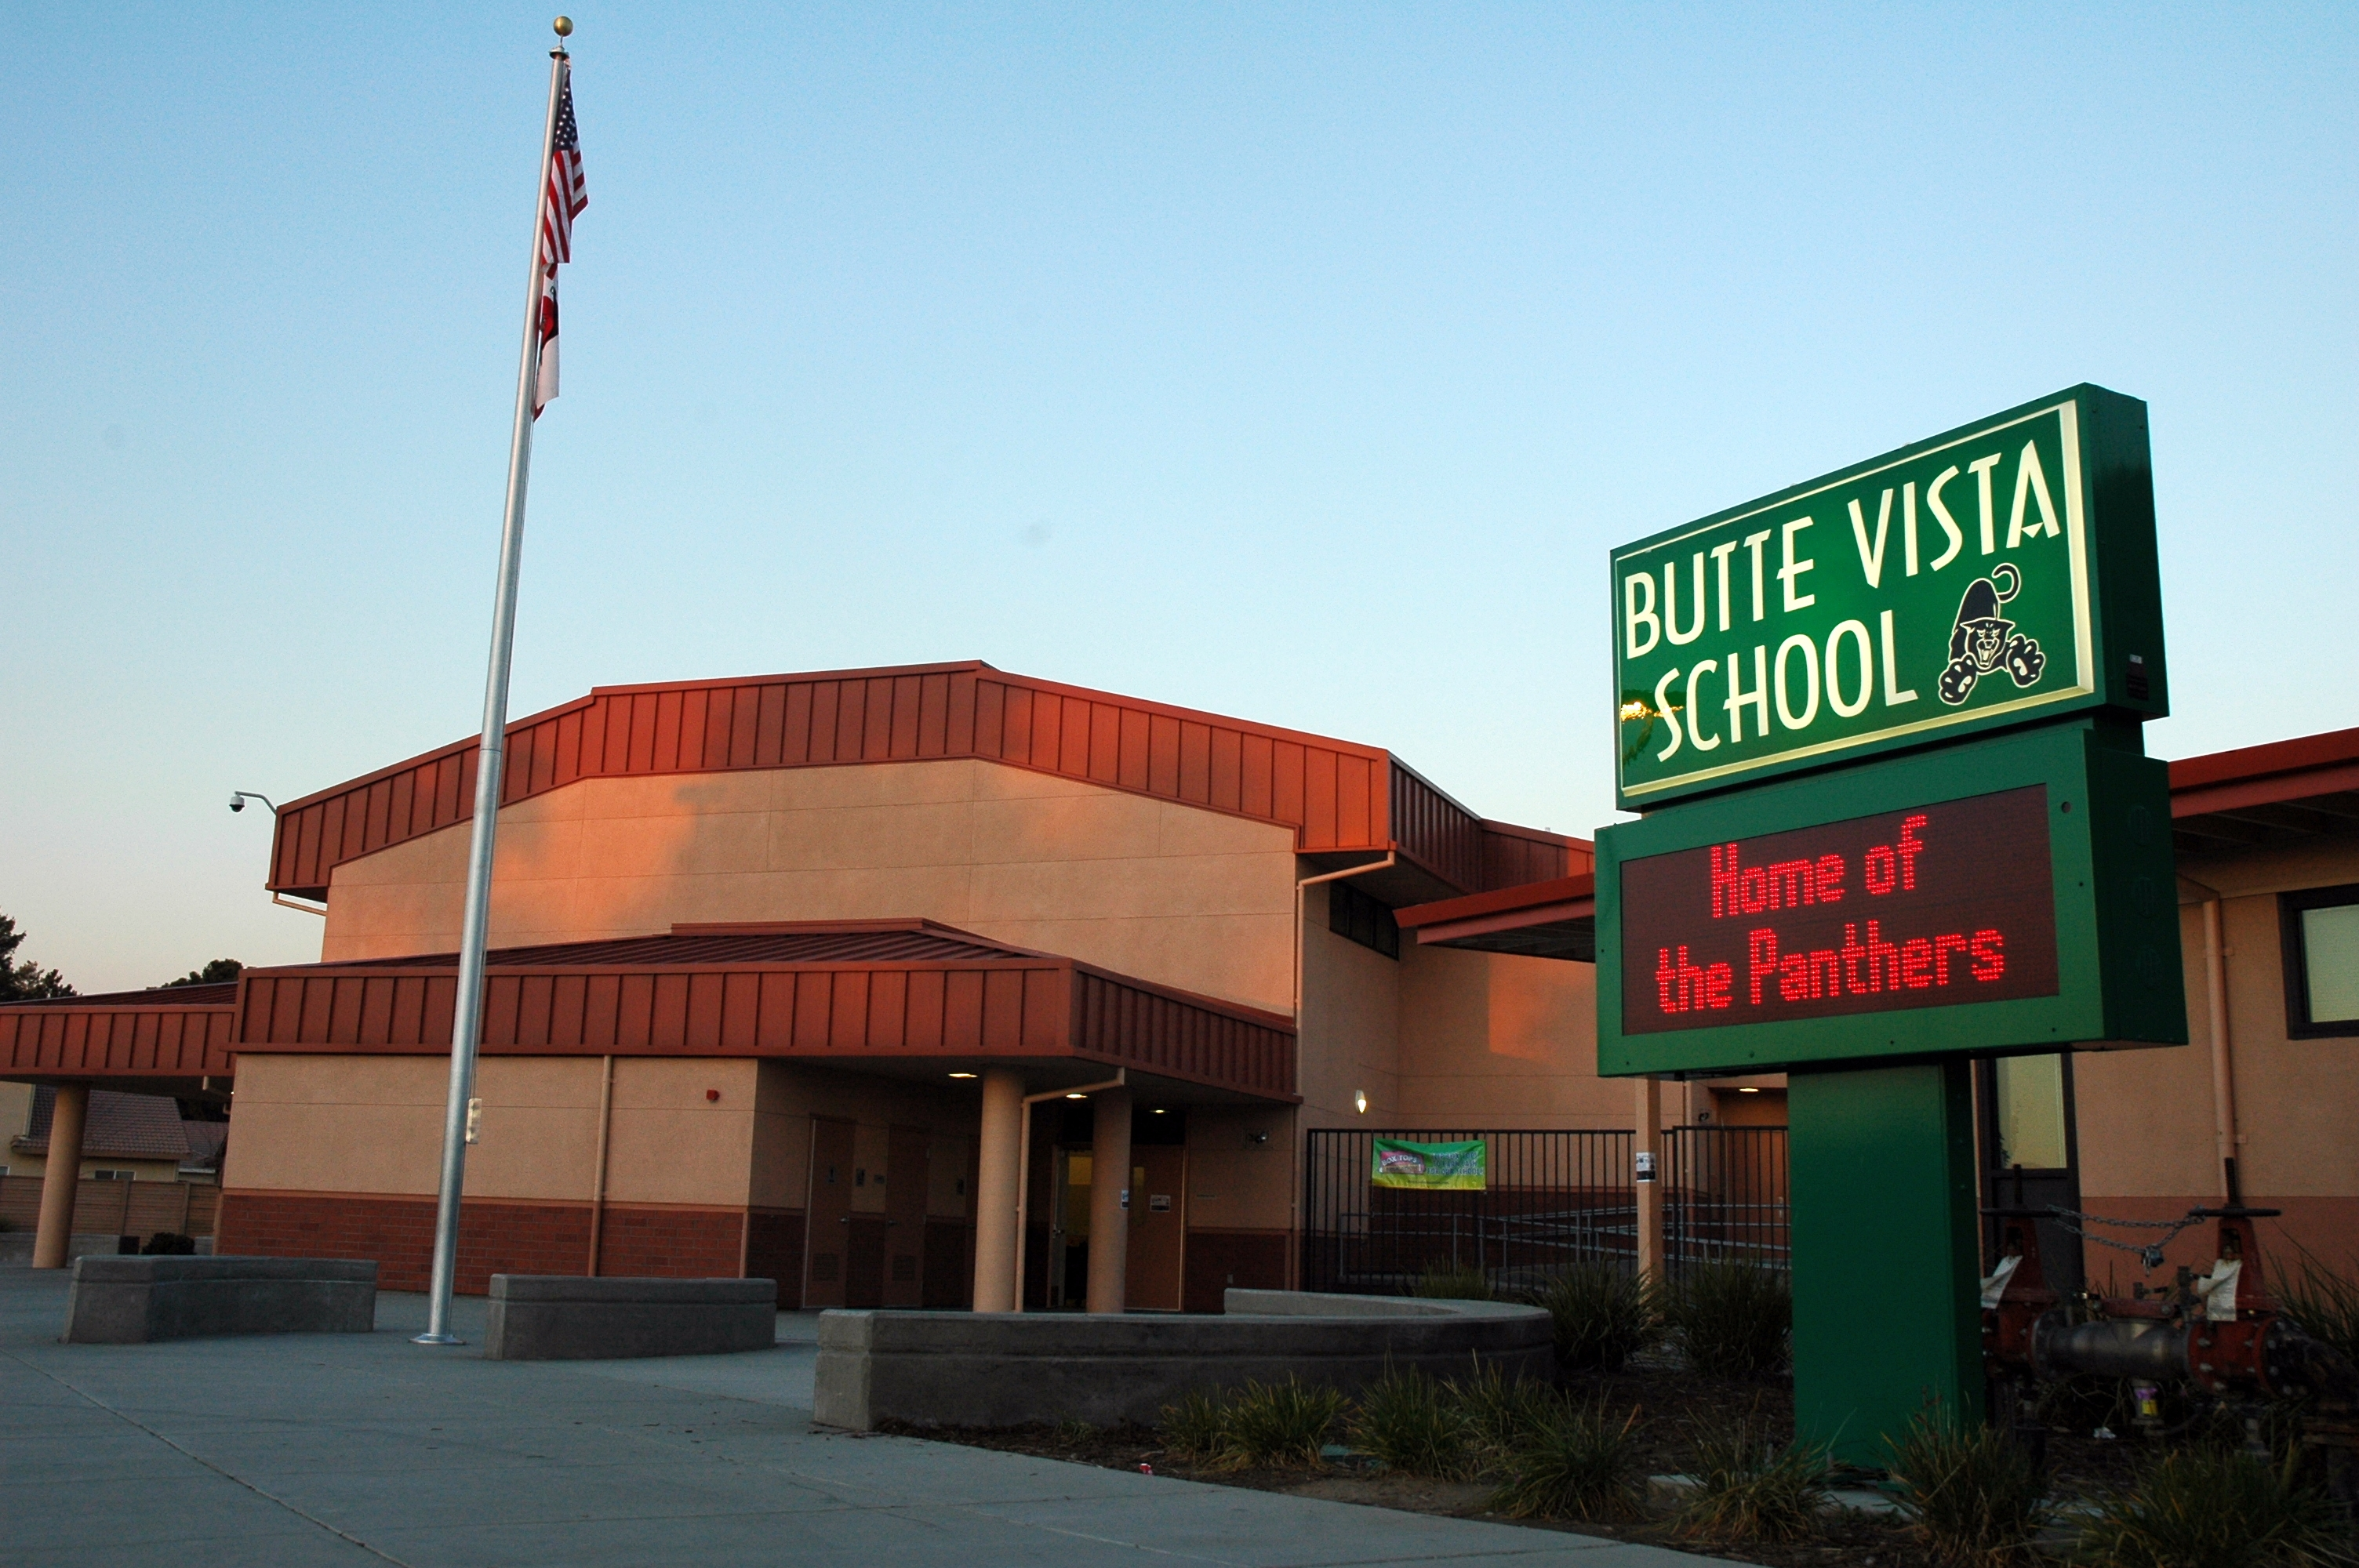 Butte Vista School